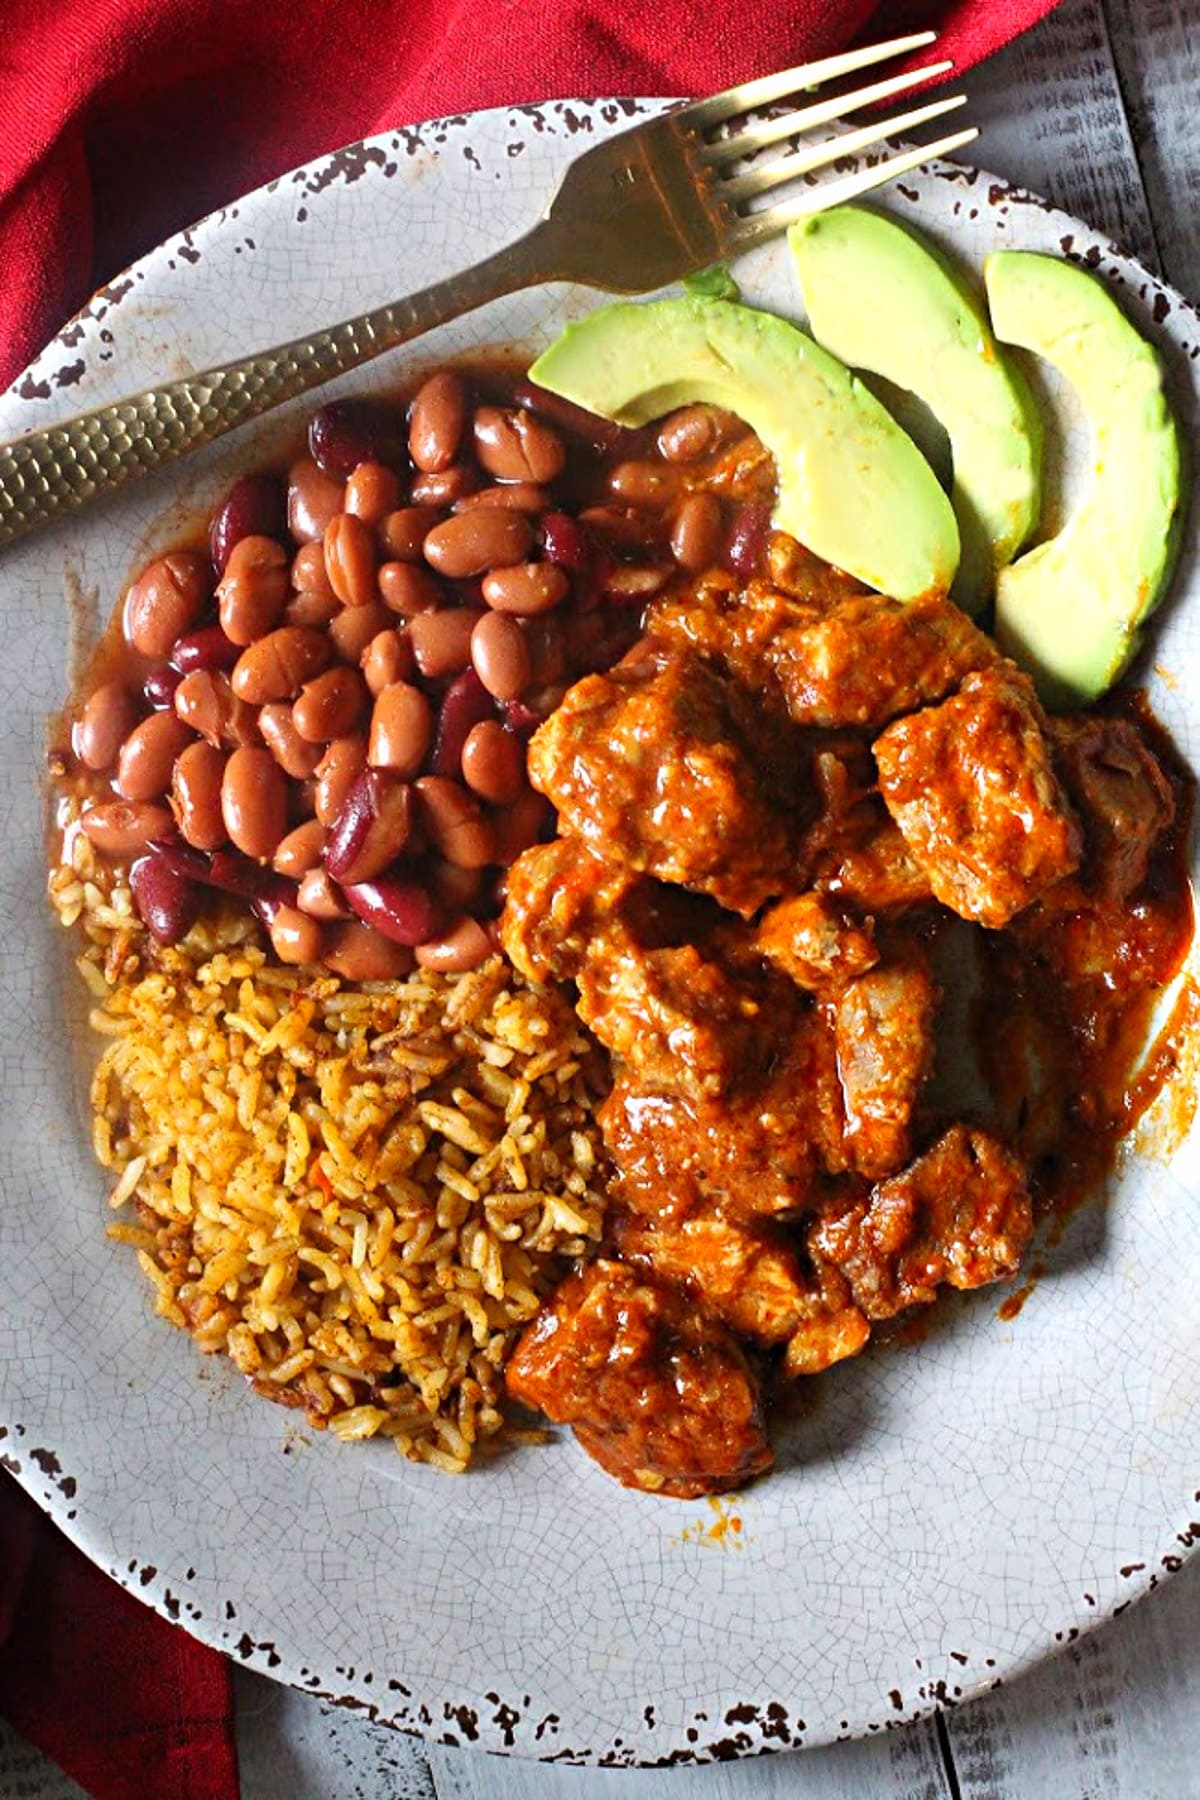 Pork braised in red chile sauce served with spanish rice, beans and slices of avocado.